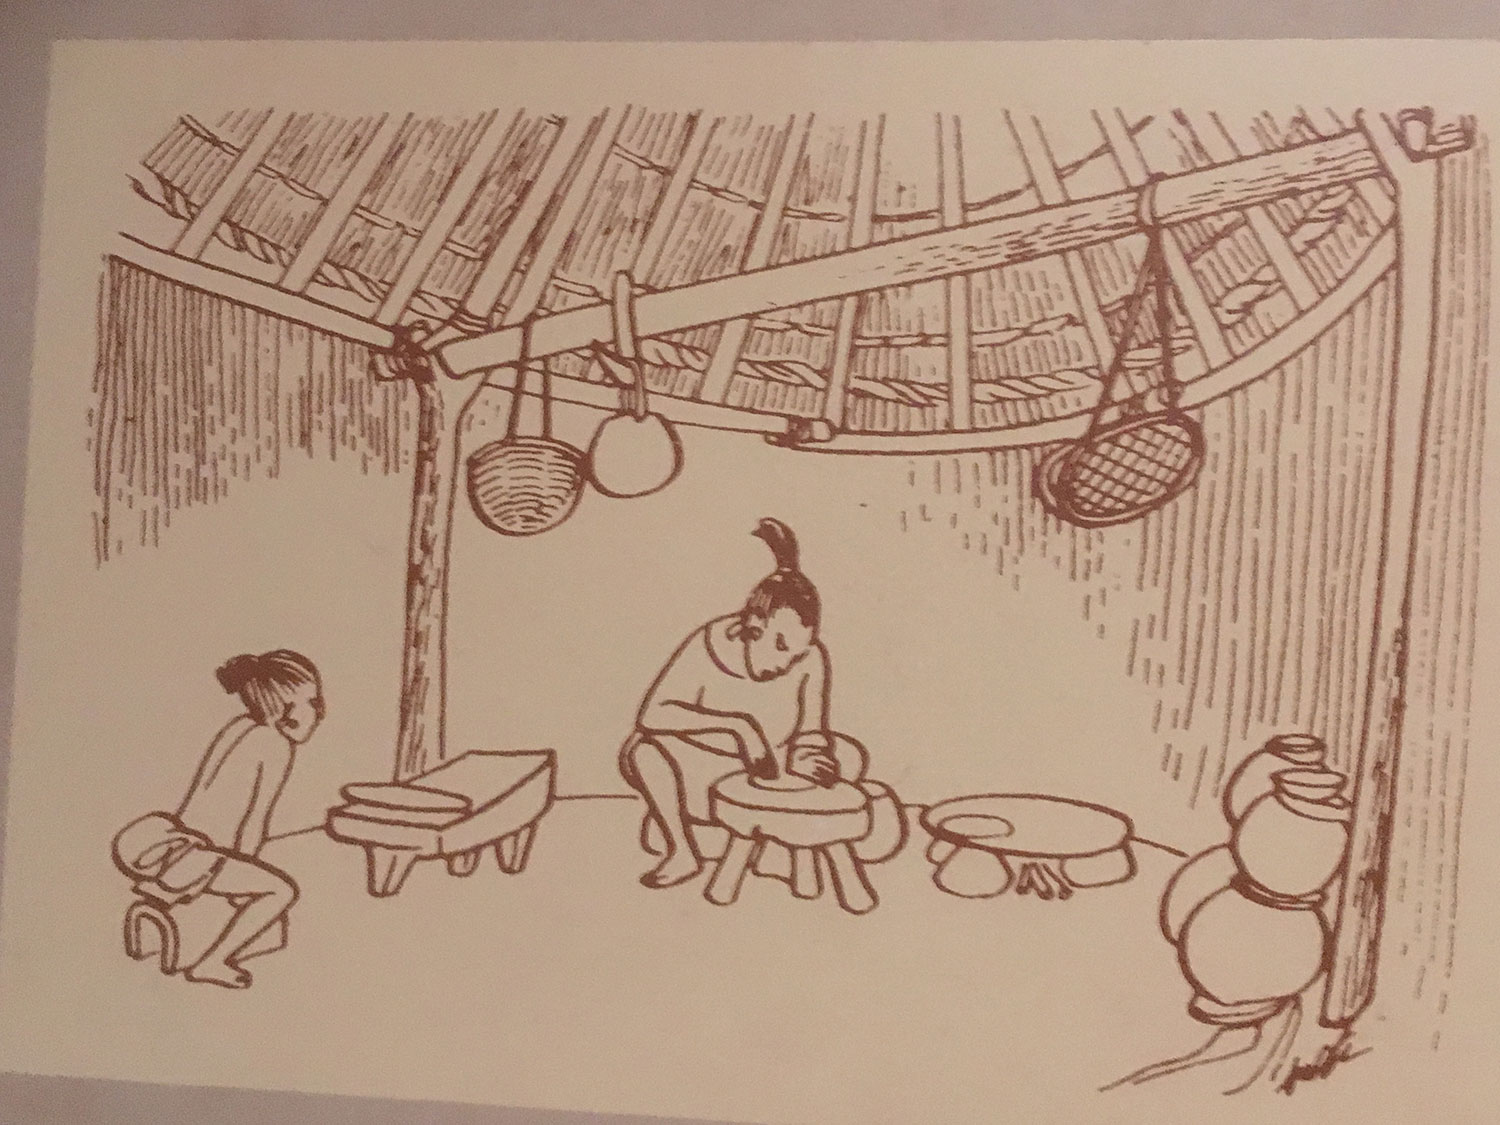 A household scene. Not different from today's dwellings in the jungle.